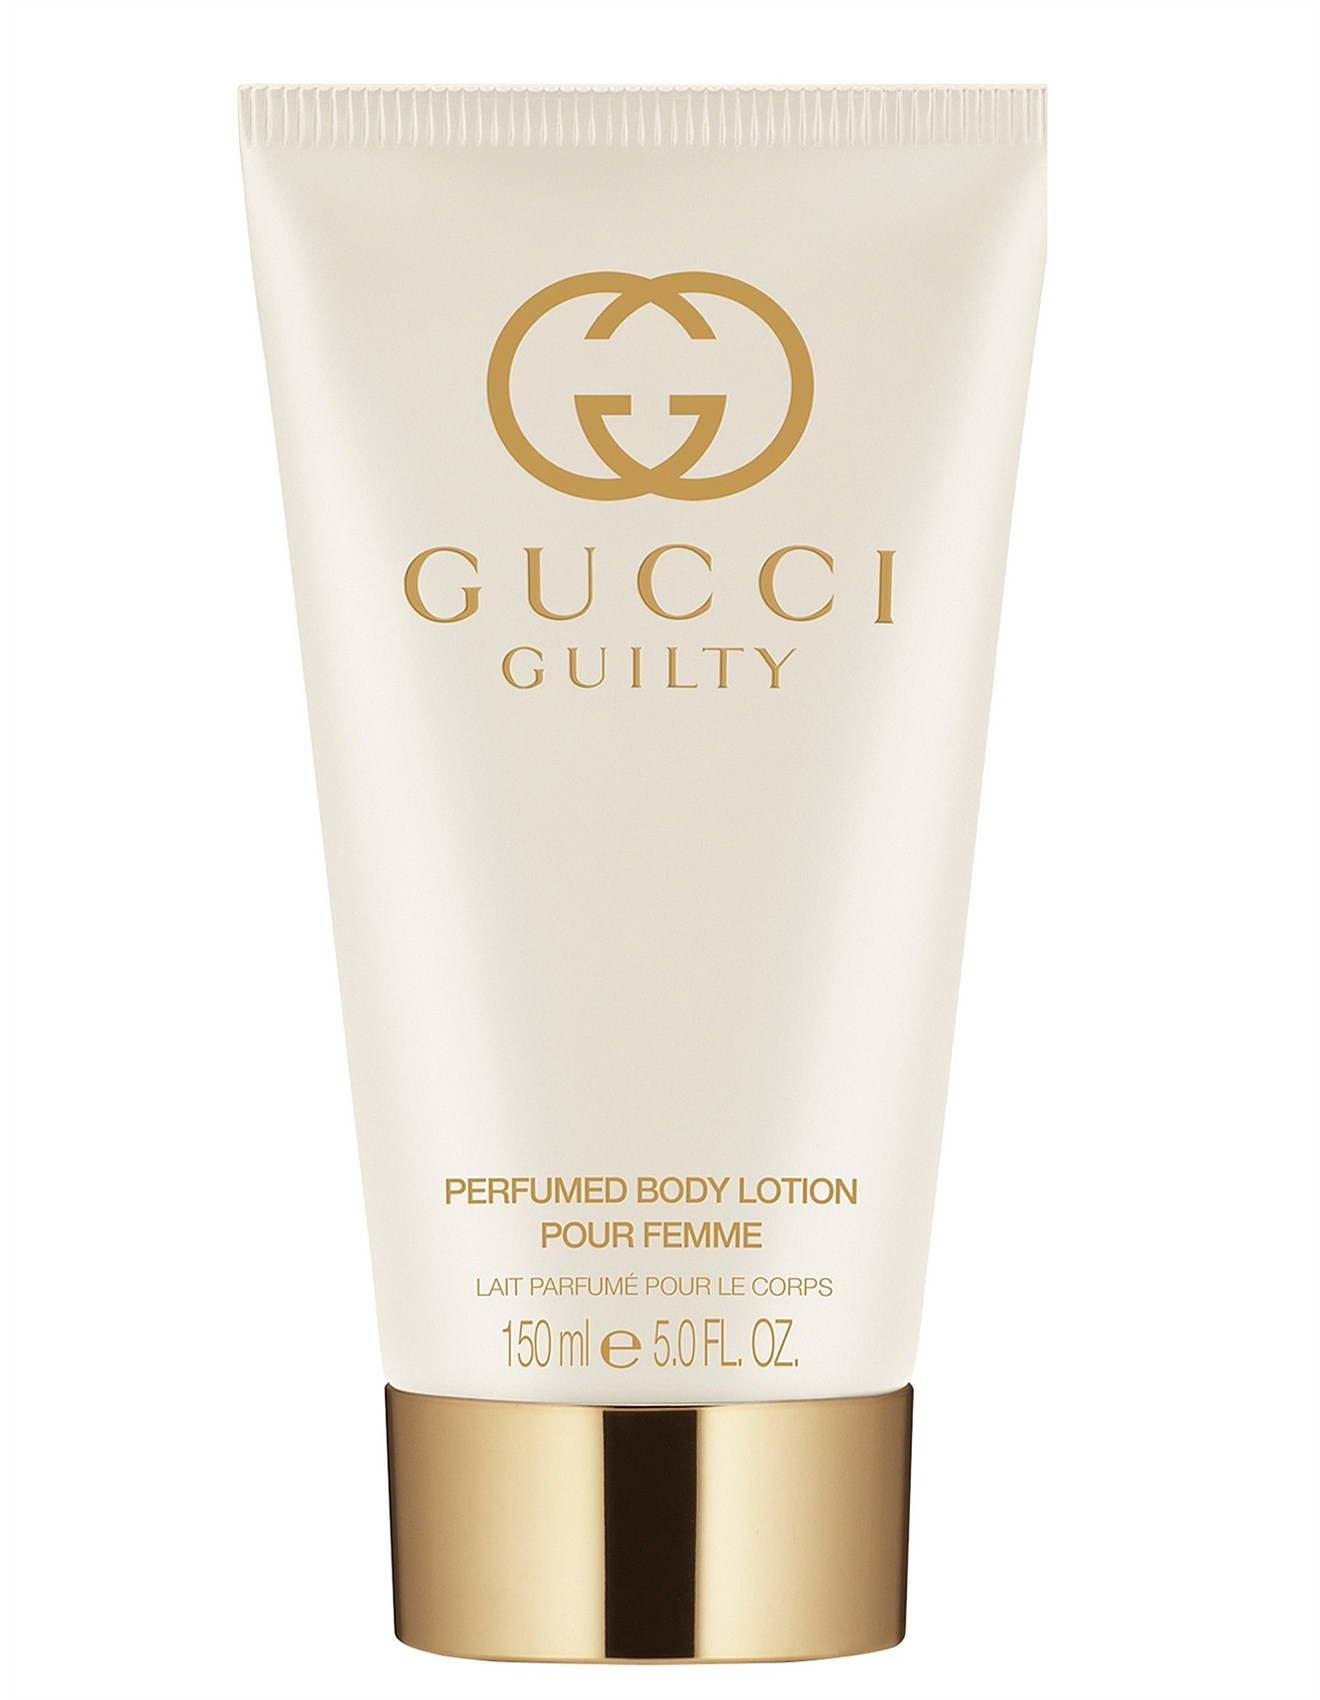 Beauty Gucci Guilty Eau De Parfum For Her Body Lotion 150ml